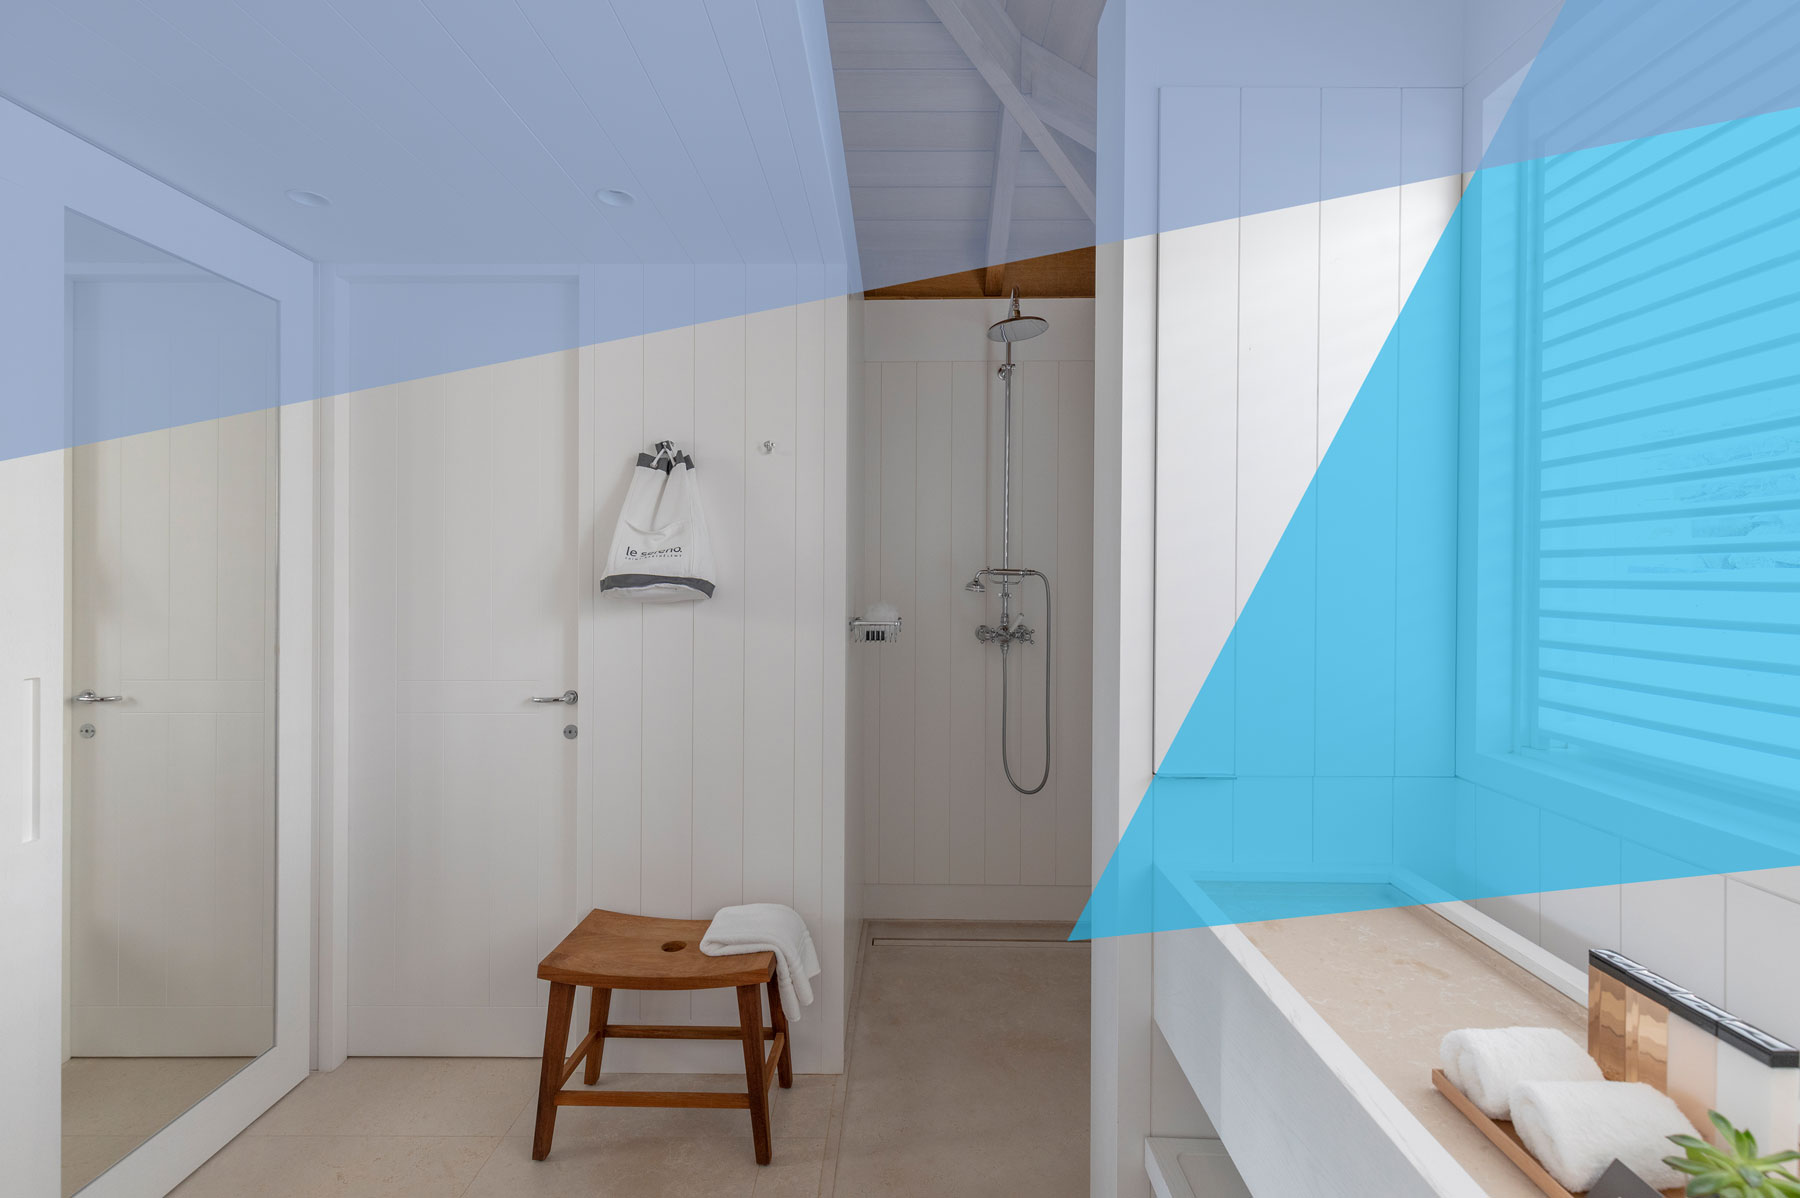 The Linear Shower Drain Is The Secret To A Luxury Bathroom Real Simple